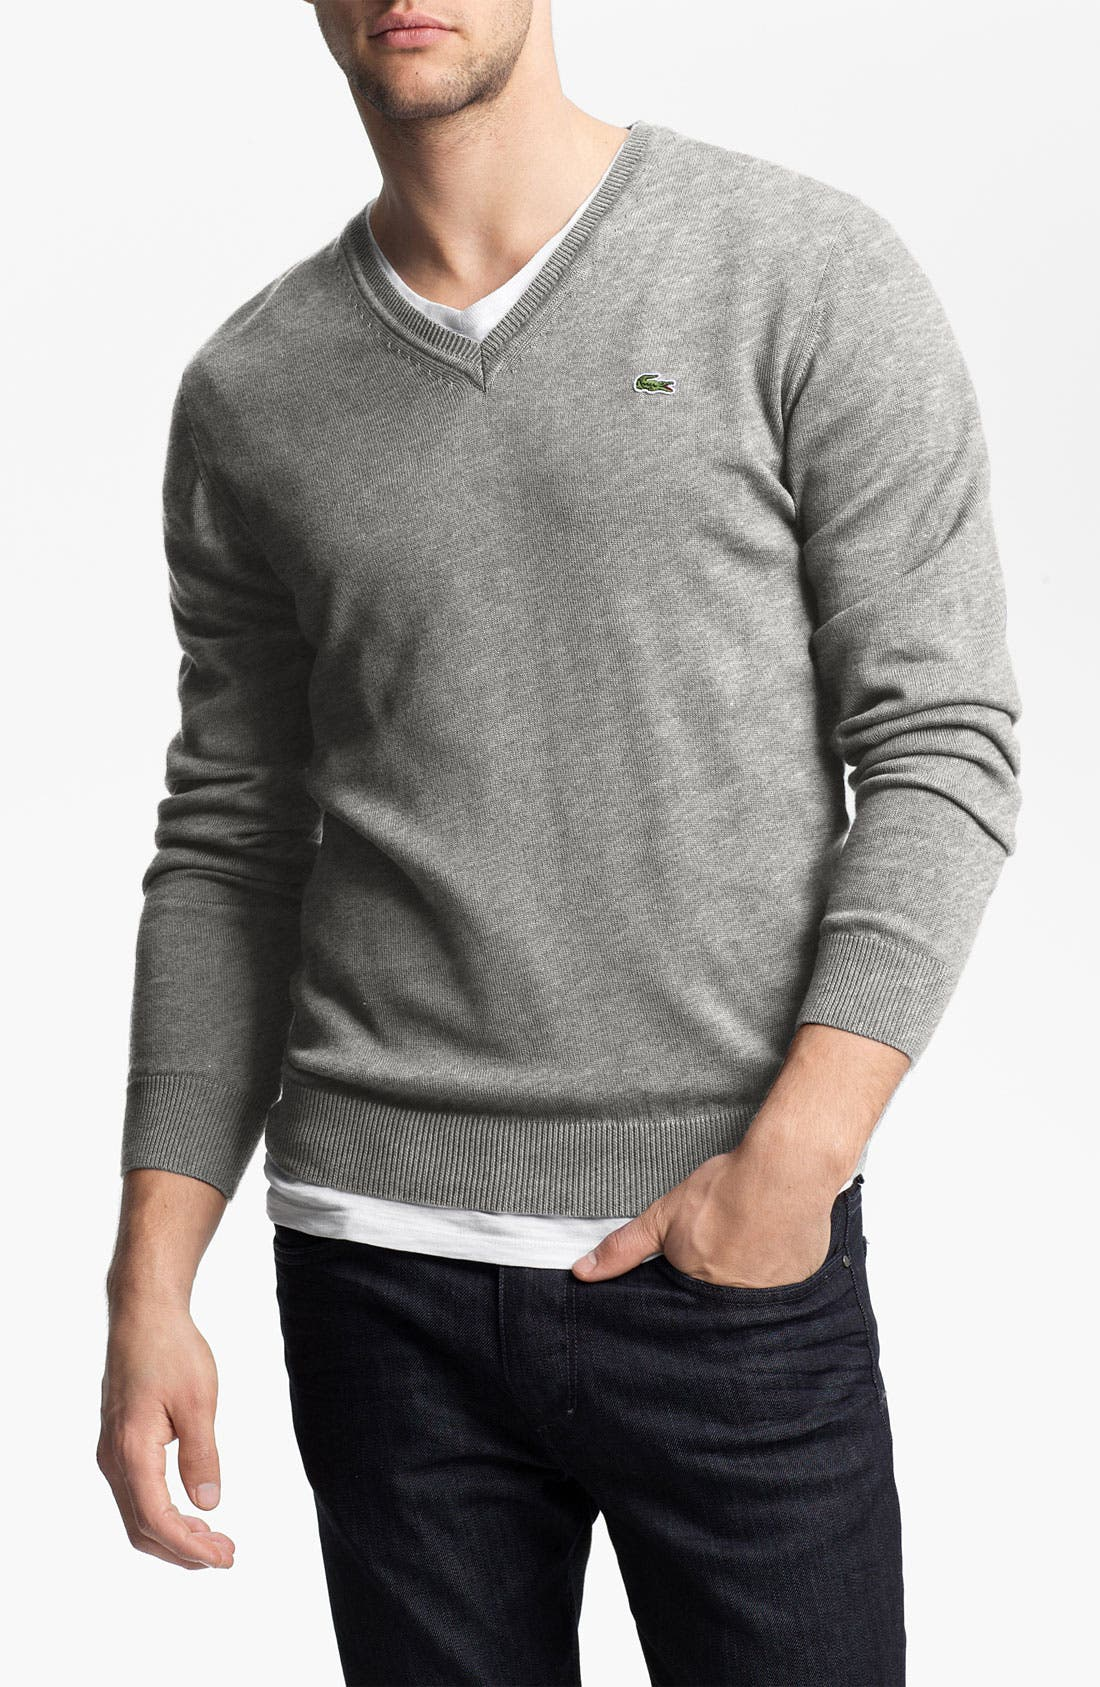 Alternate Image 1 Selected - Lacoste Jersey Cotton V-Neck Sweater